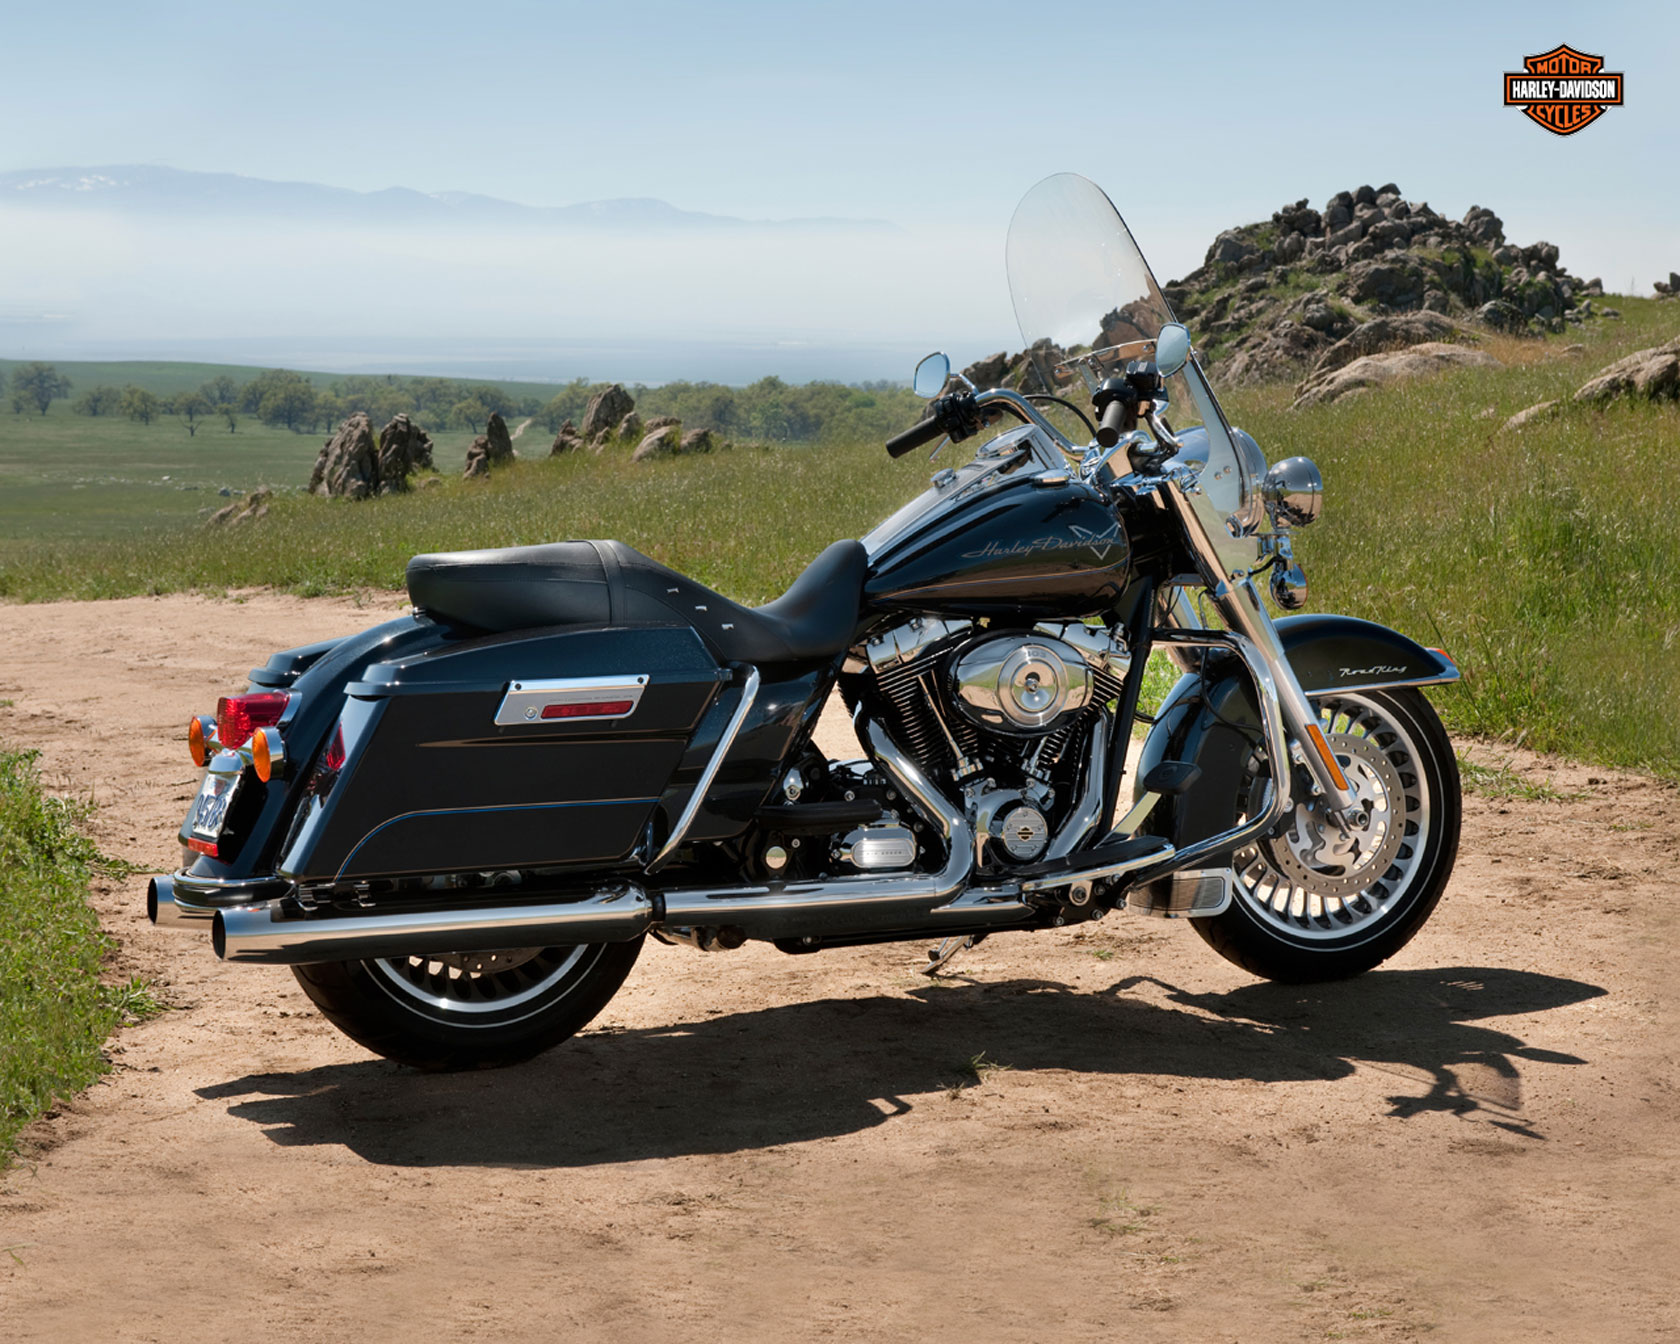 2013 harley davidson flhr road king wallpaper 1680x1344. Black Bedroom Furniture Sets. Home Design Ideas